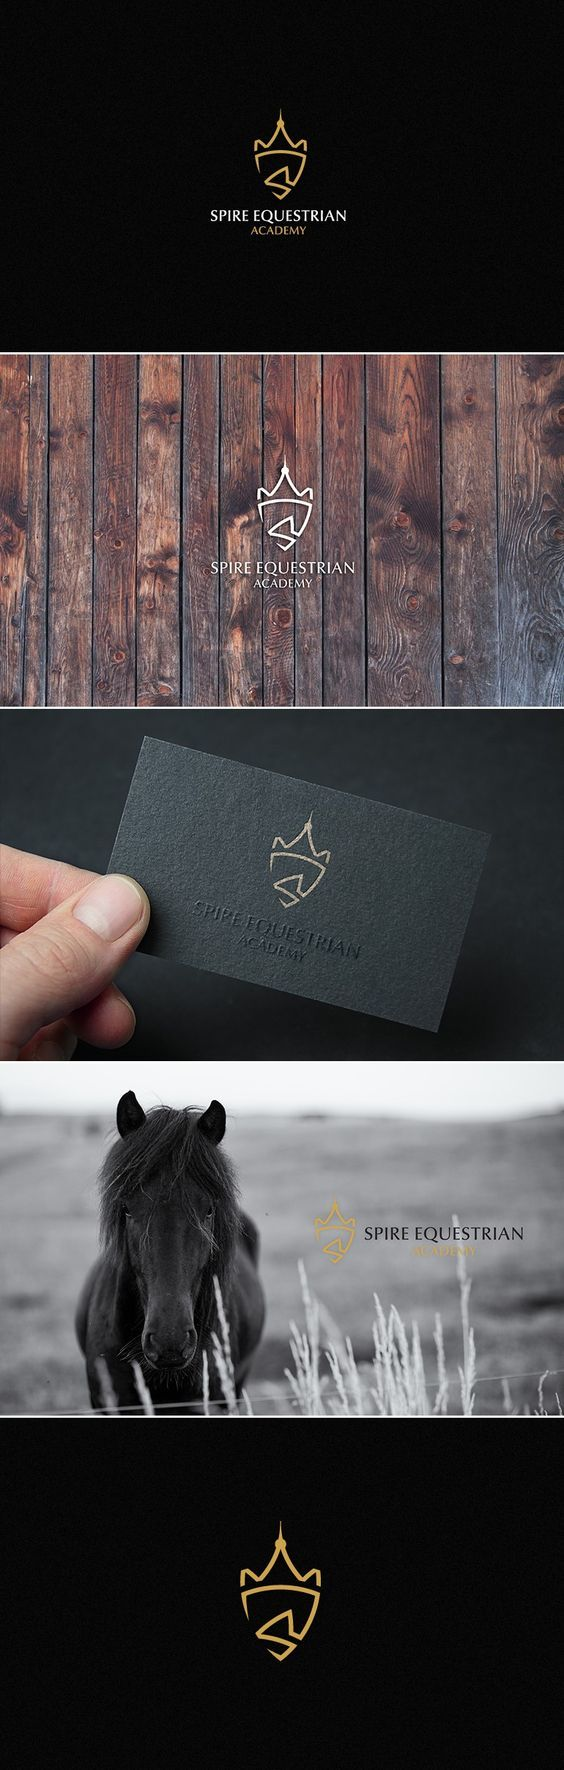 #Logo #design for Spire Equestrian Academy displays the horse imagery in a non-cliche, #elegant and high-end way.: